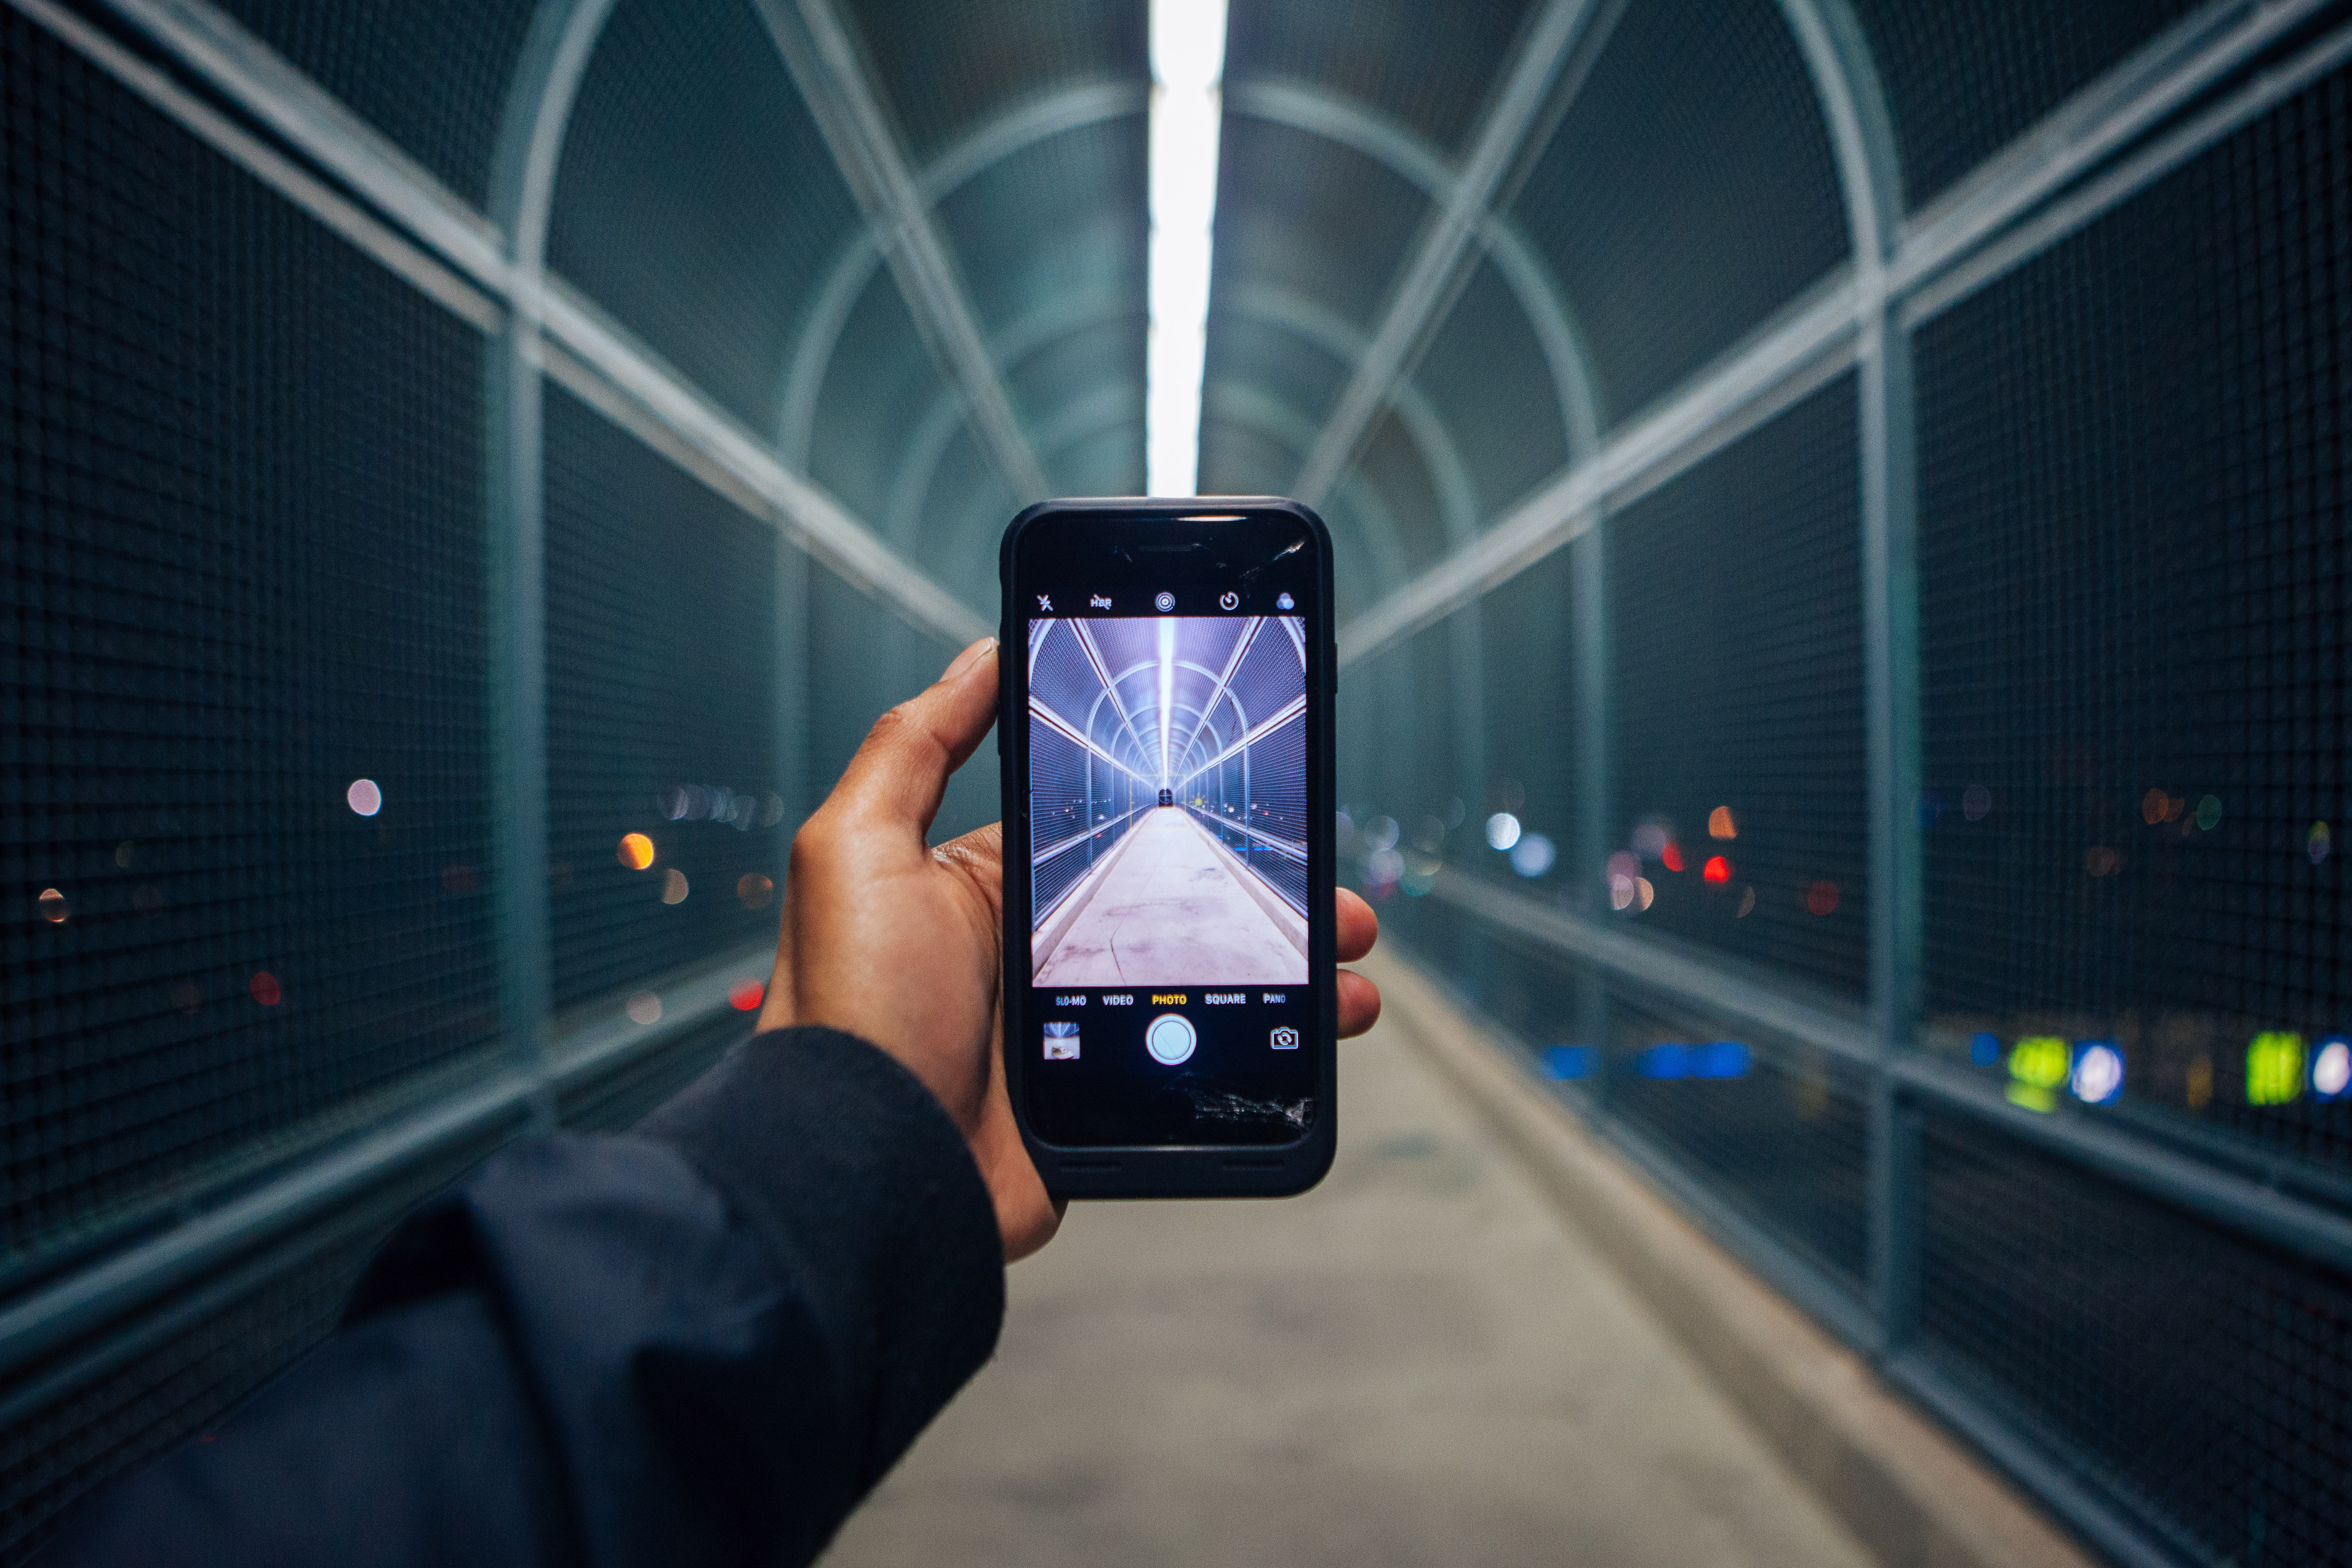 Hand in blue sleeve holding smartphone taking a photograph of a bridge at night